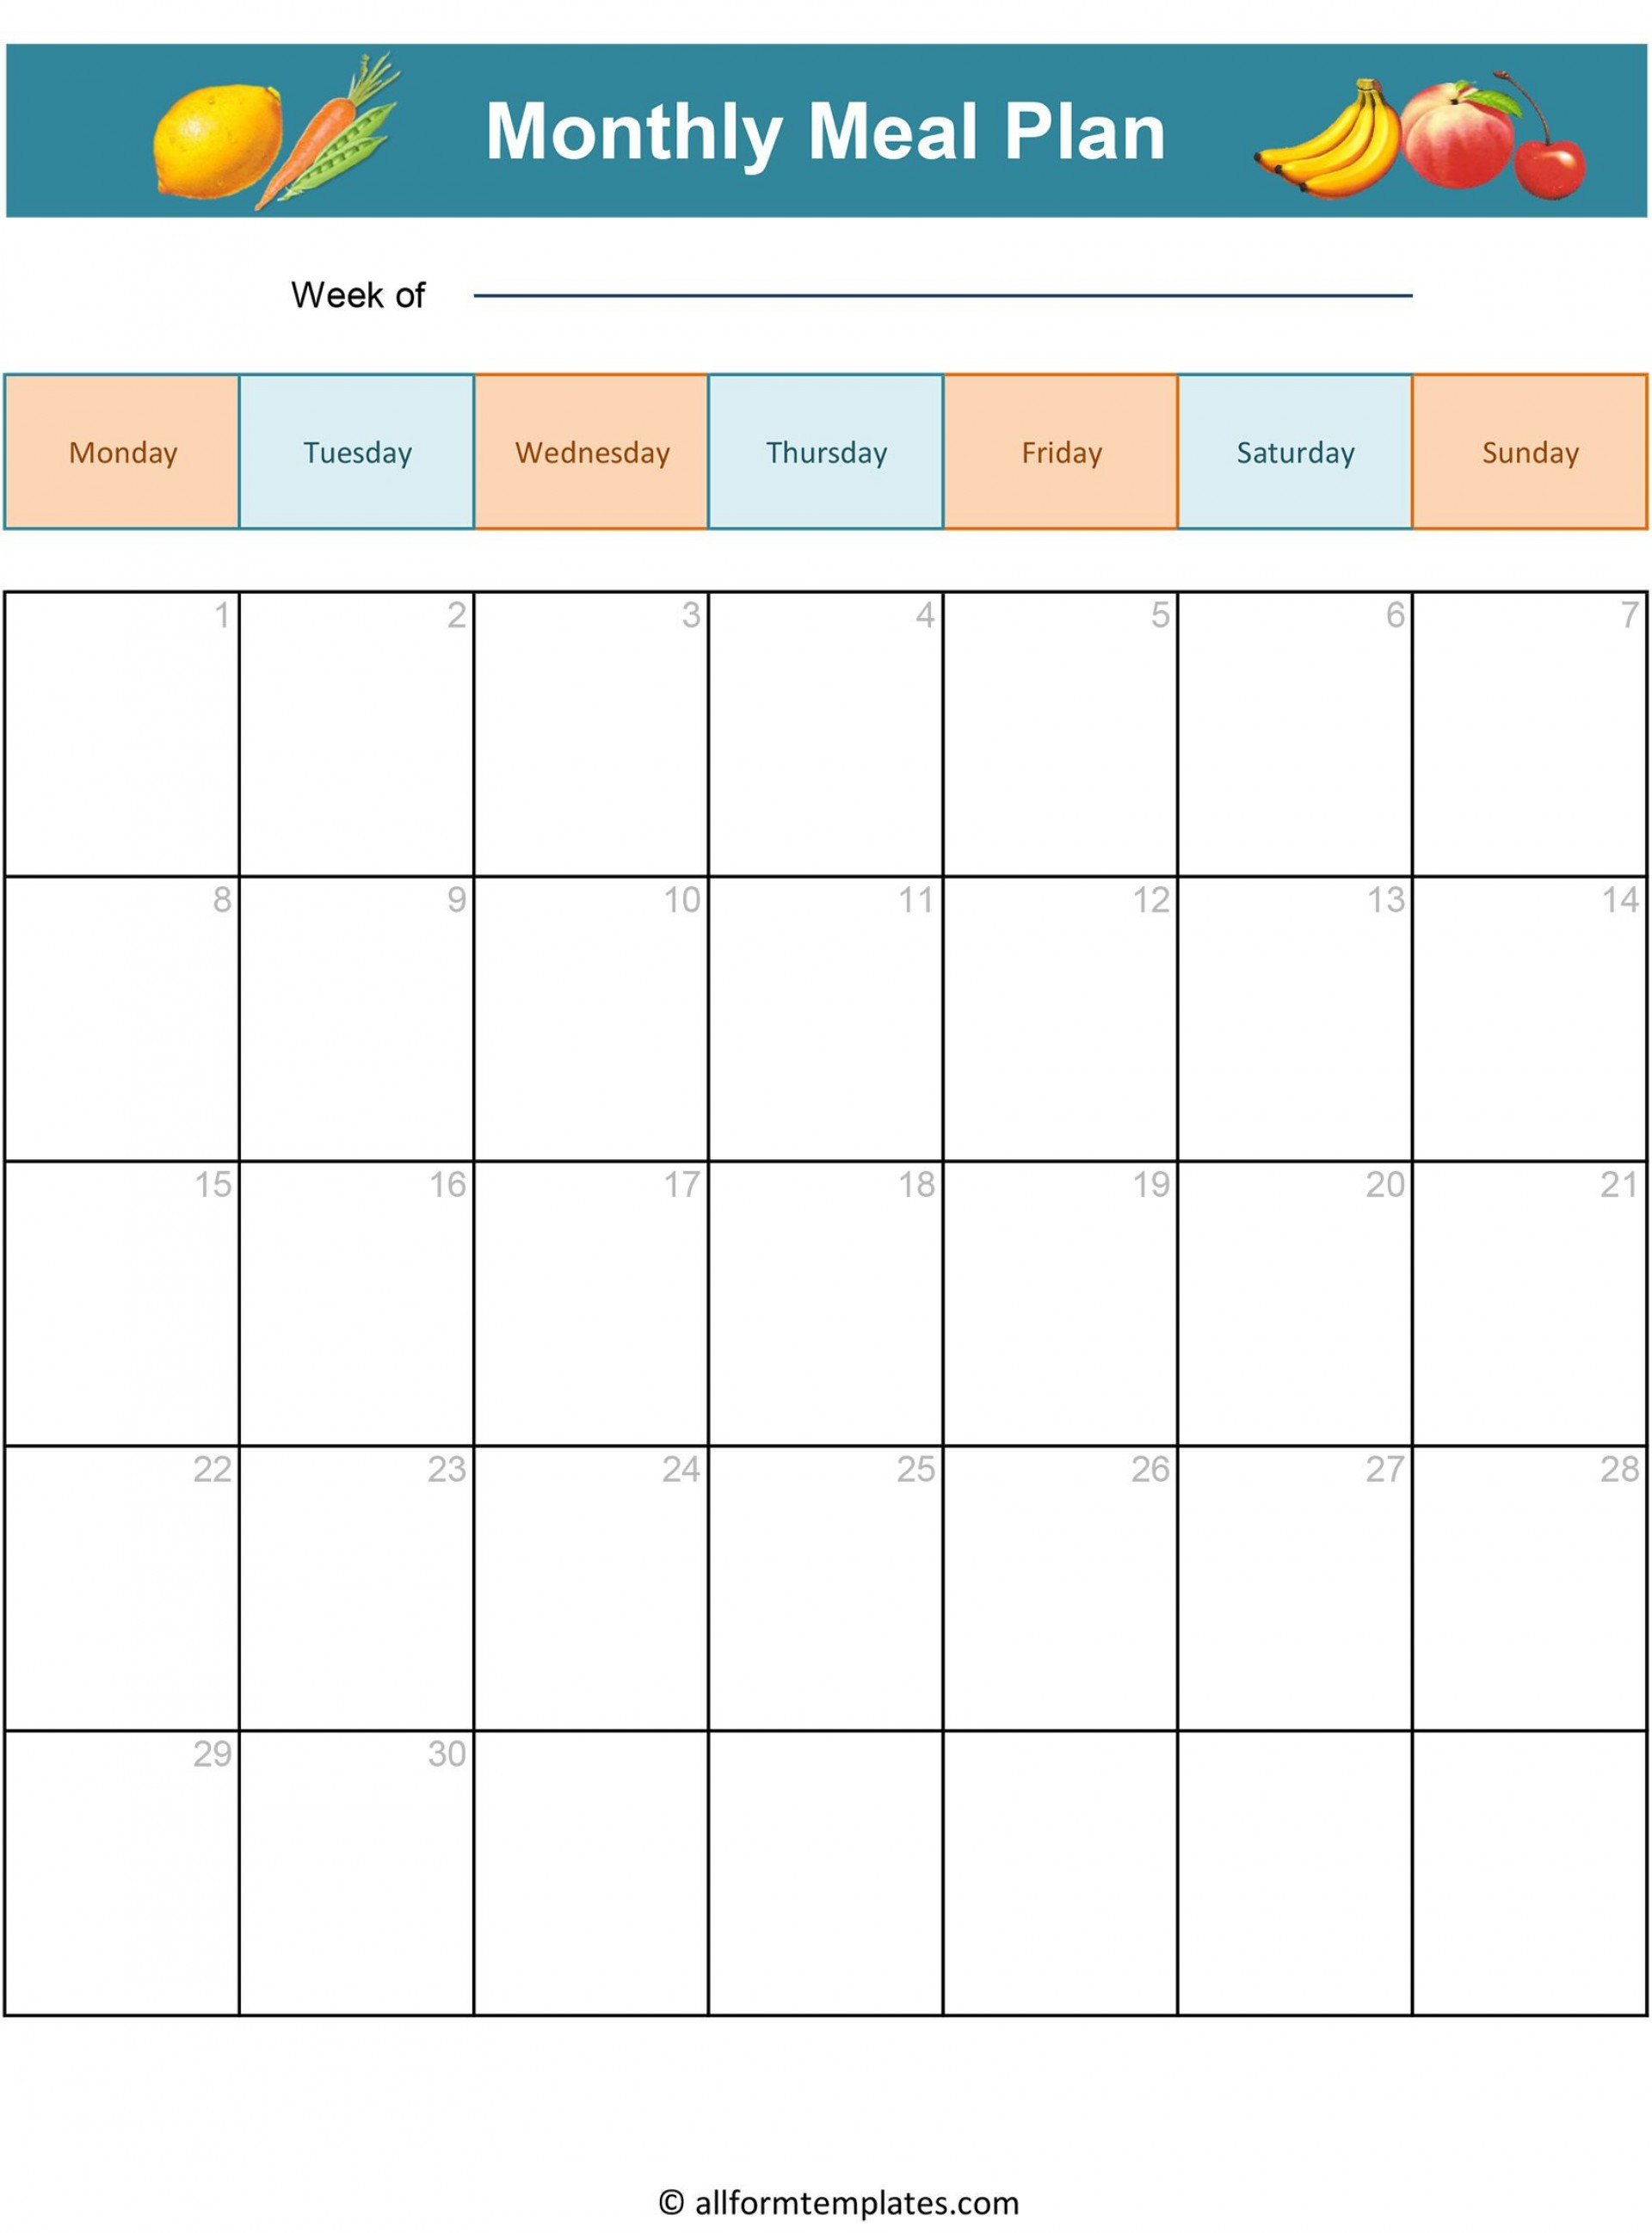 008 Magnificent Excel Weekly Meal Planner Template Highest Clarity  With Grocery List Downloadable1920